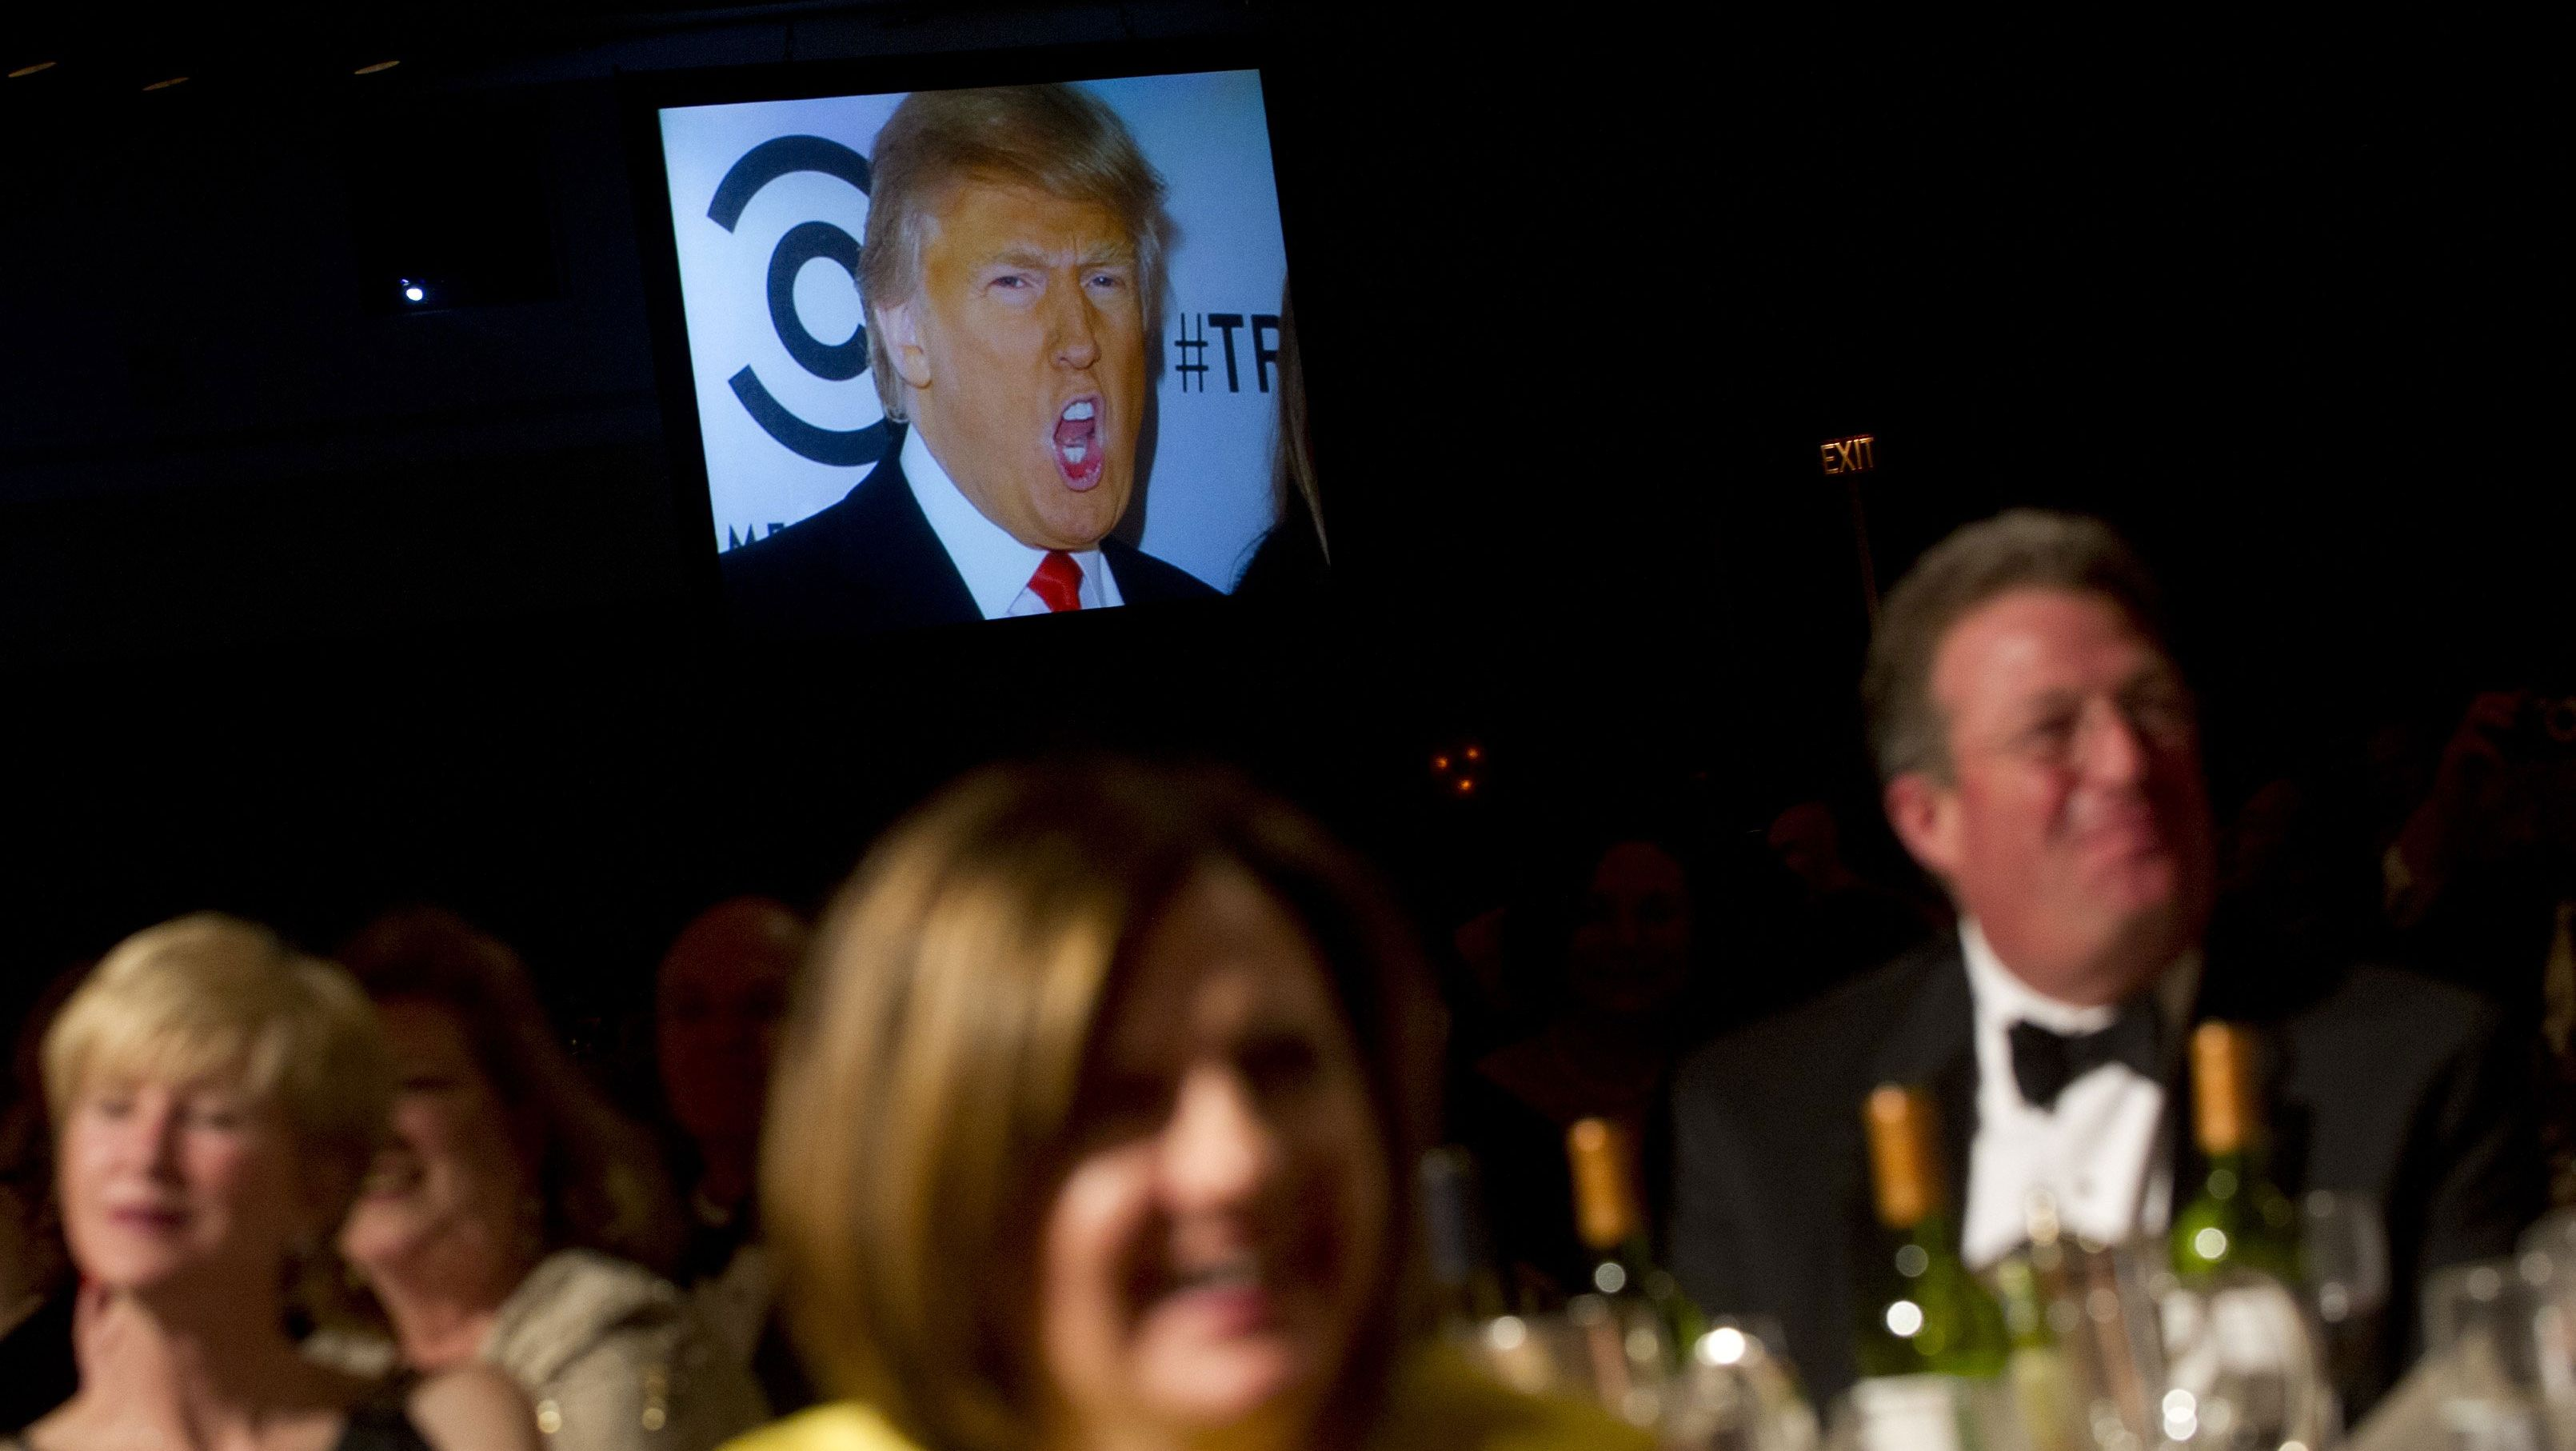 A picture of Donald Trump appeared on a screen as Barack Obama told a joke during the White House Correspondents' Dinner in Washington in 2012.​​